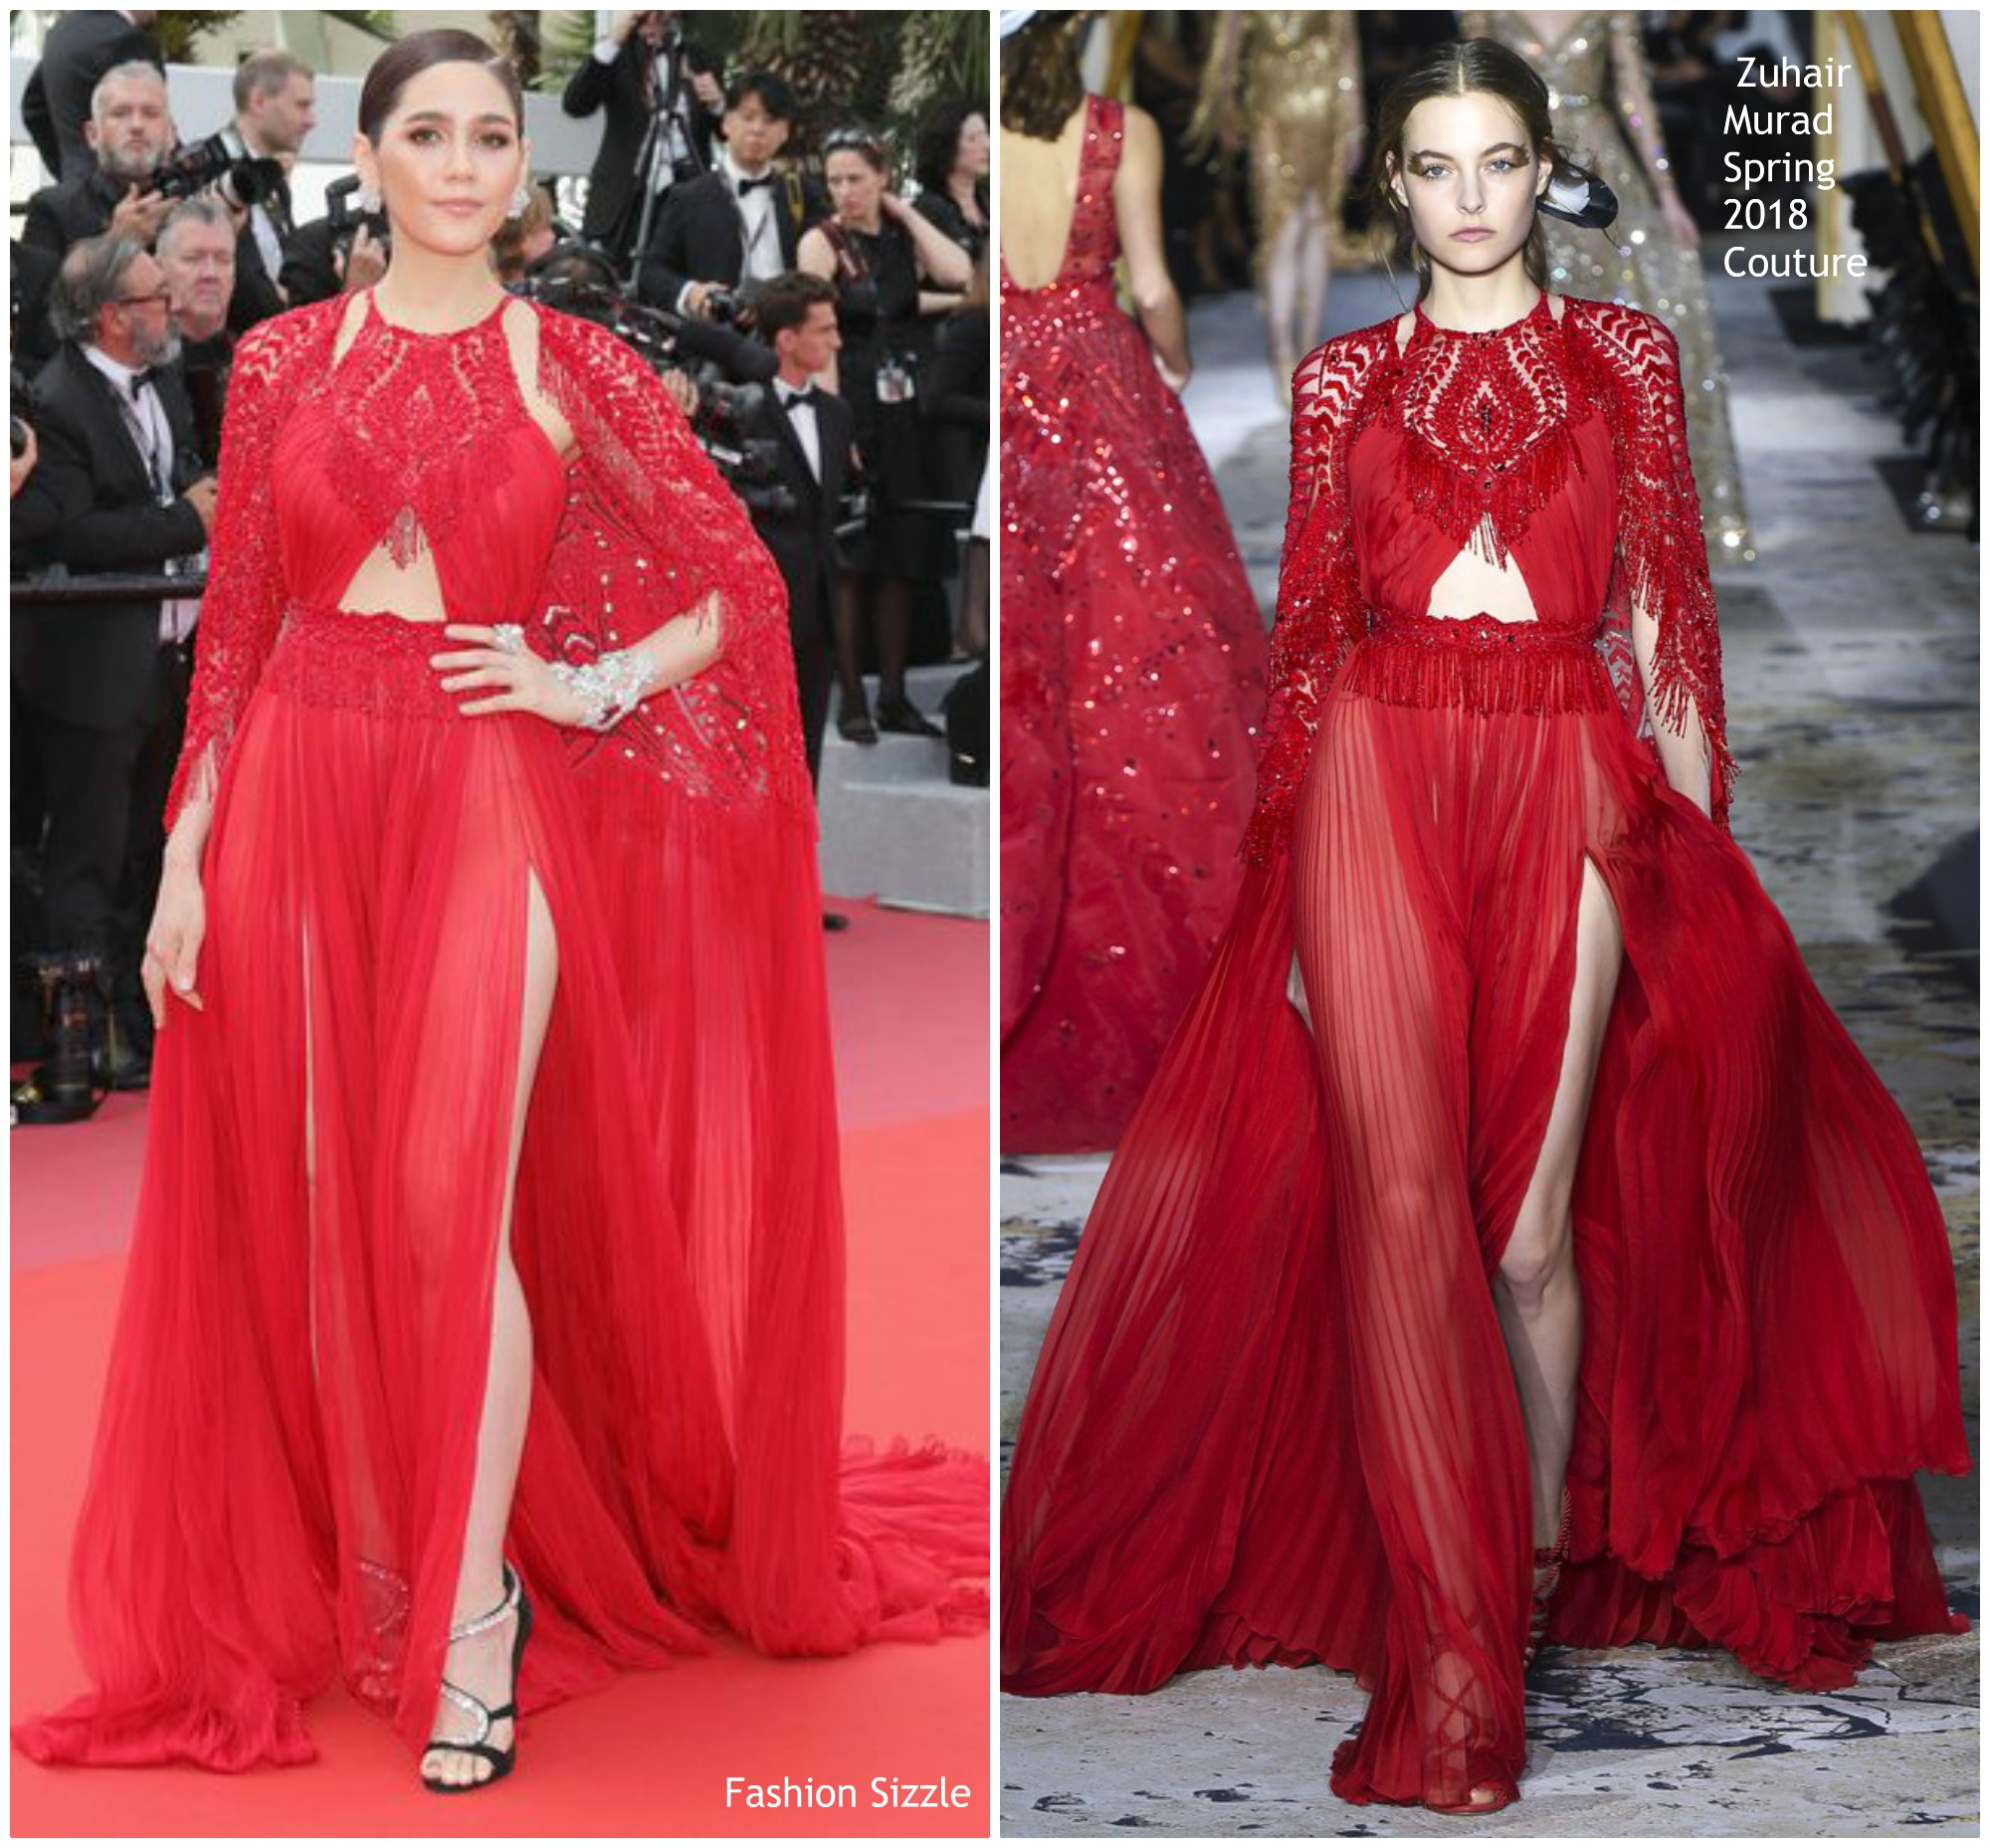 araya-a-hargate-in-zuhair-murad-couture-everybody-knows-cannes-film-festival-screening